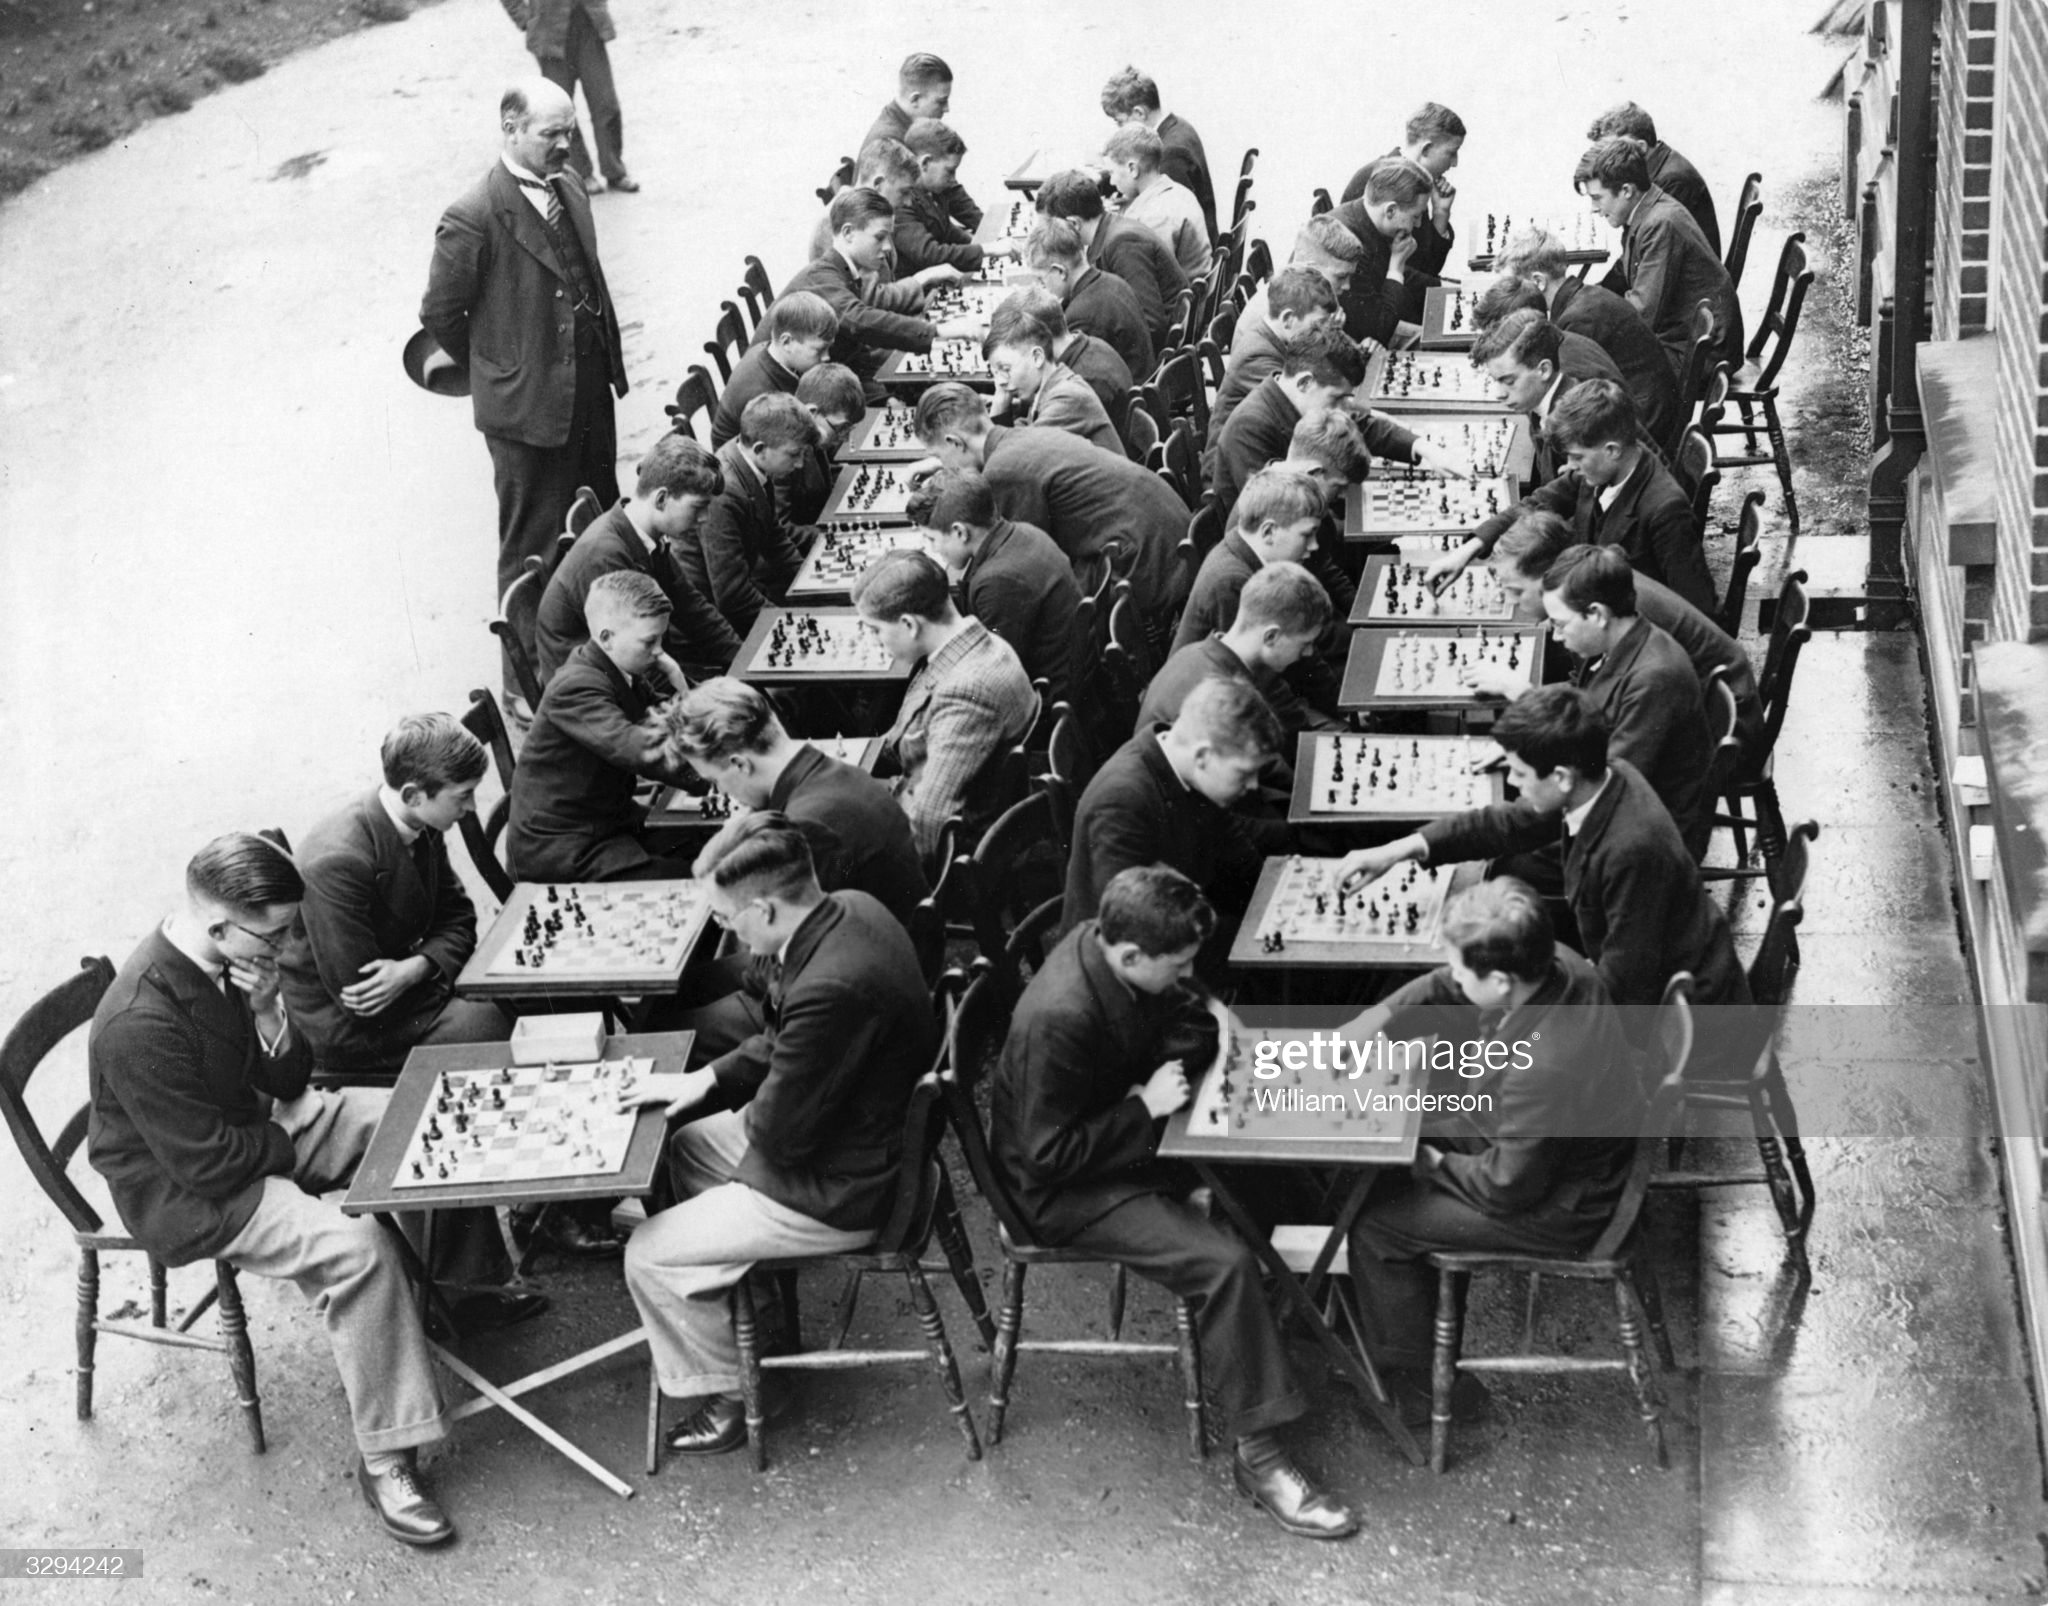 Chess Tournament 19th November 1934: An inter-form chess match for the pupils is in progress at Wednesbury High School for Boys, supervised by Mr C S Kipping, their headmaster. (Photo by William Vanderson/Fox Photos/Getty Images)